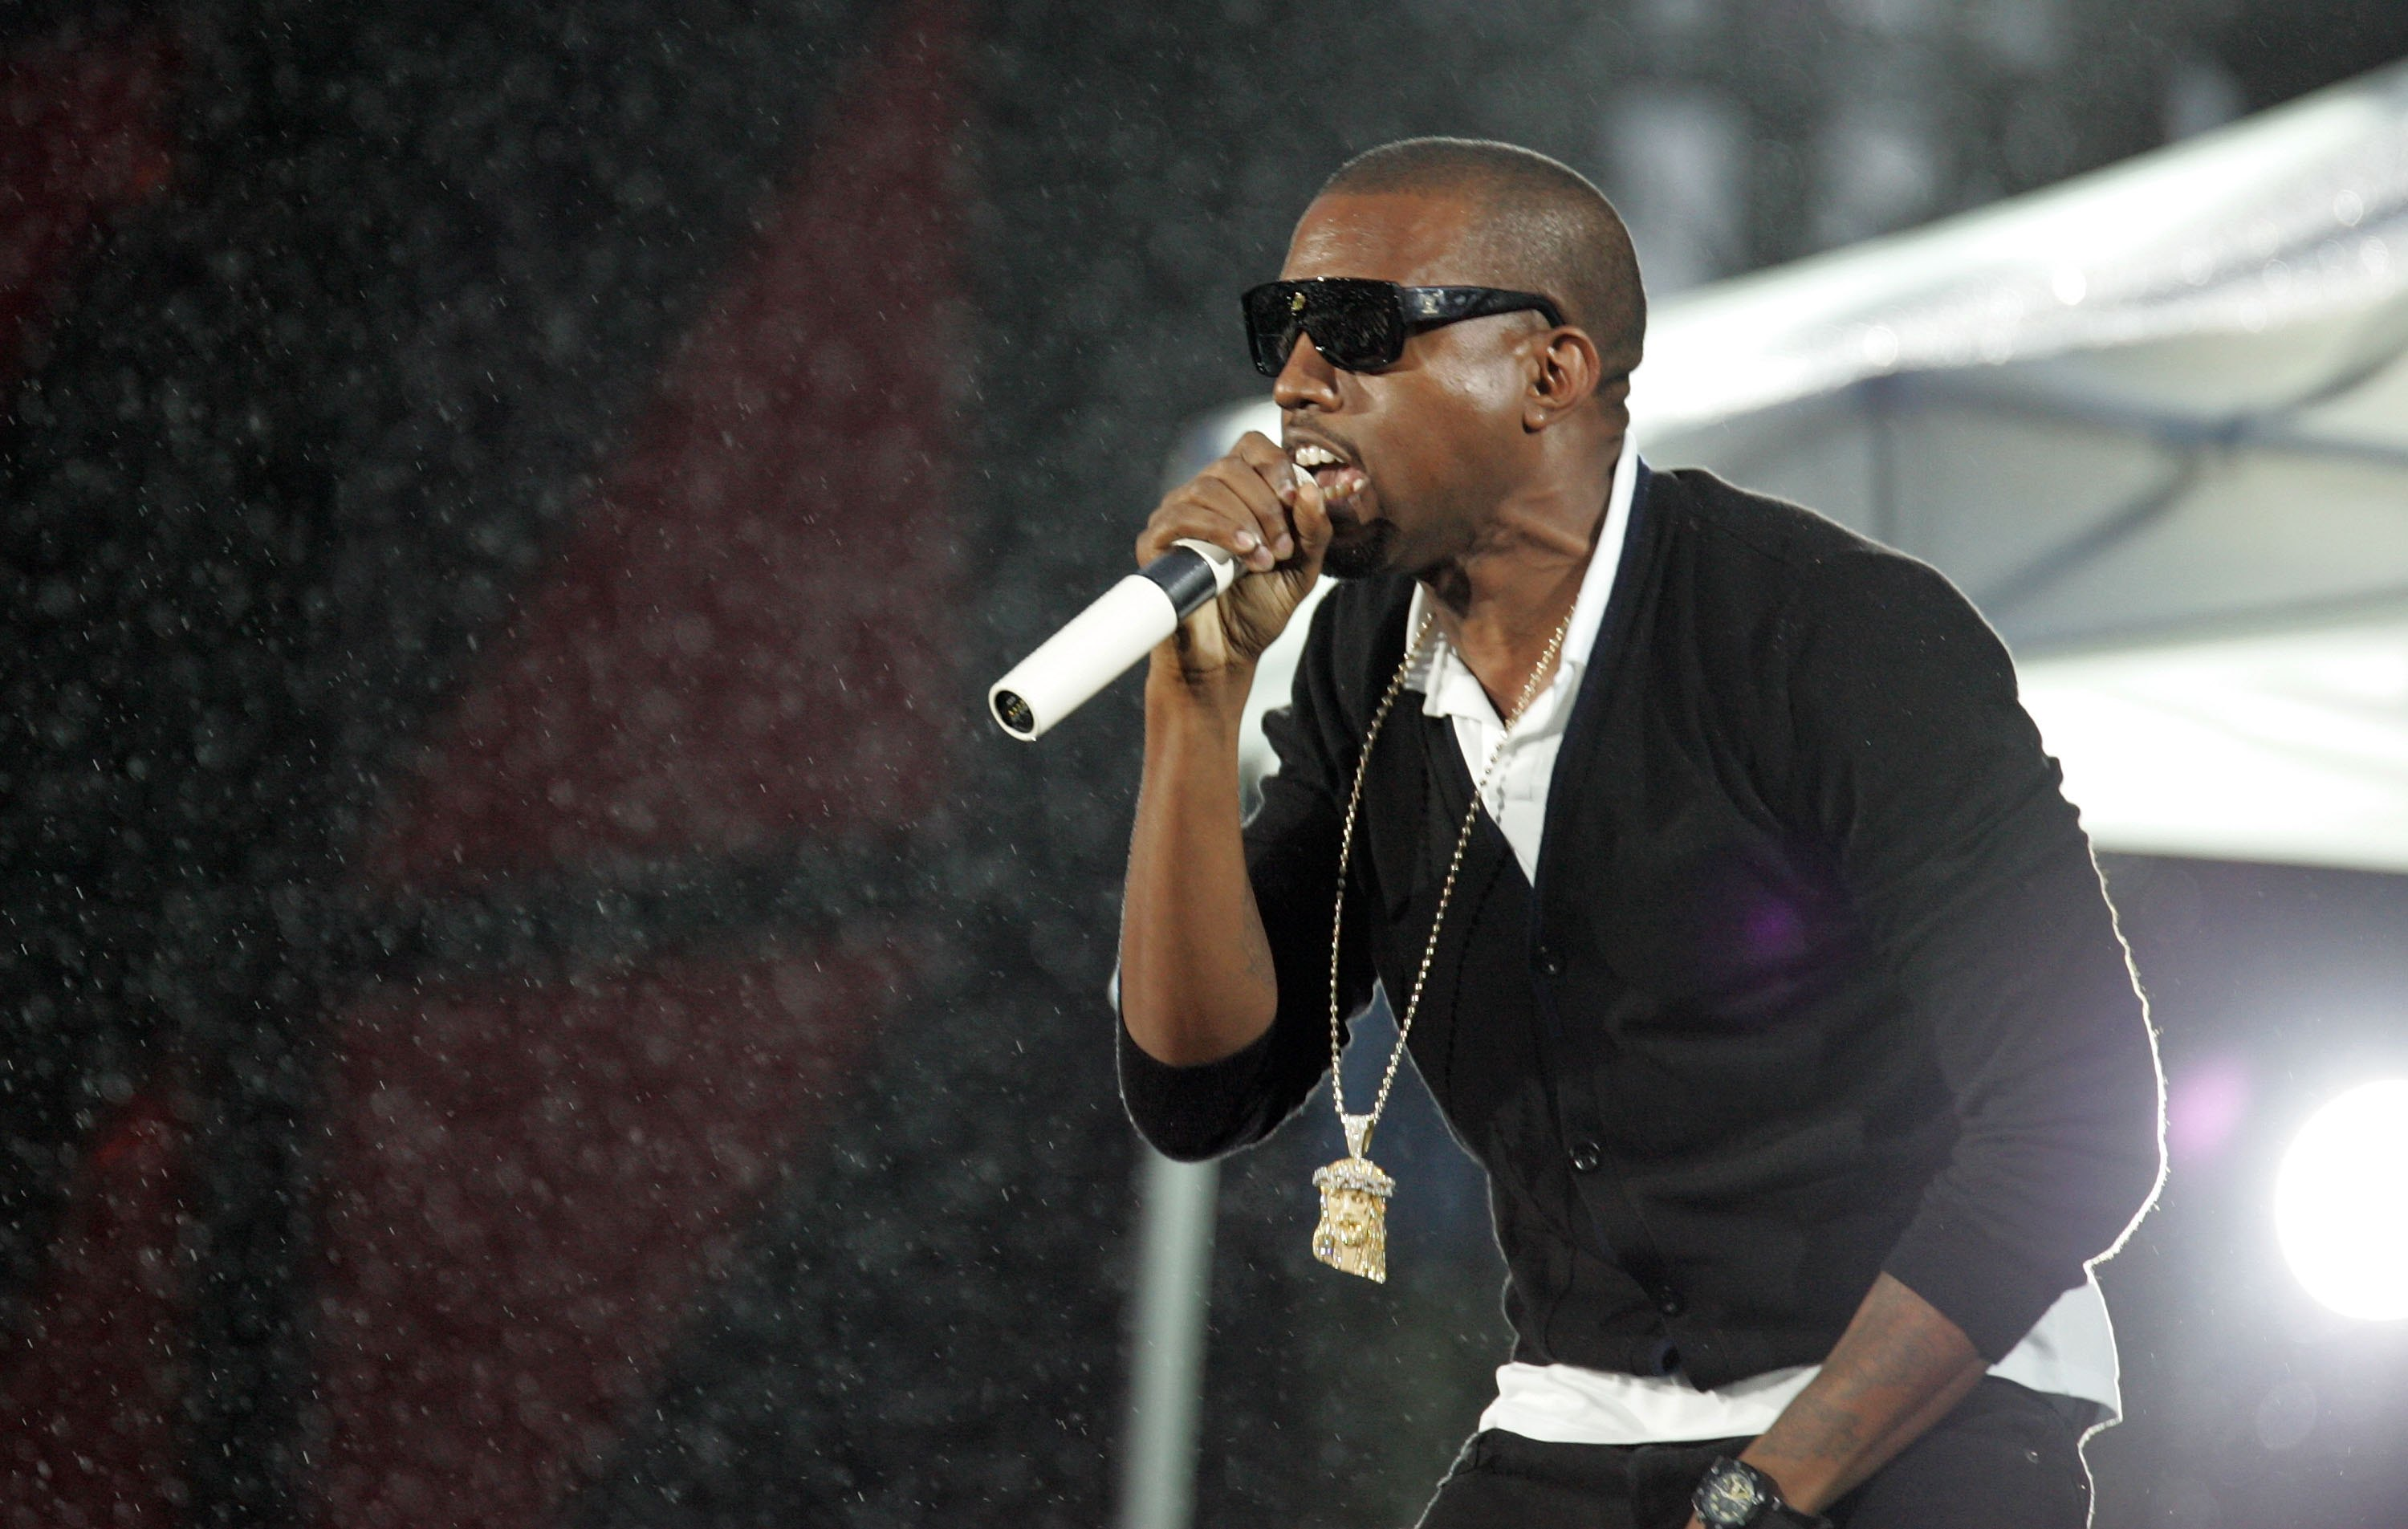 Kanye West Saved Lamar Odoms Life With The Power Of Rap GettyImages 72637546